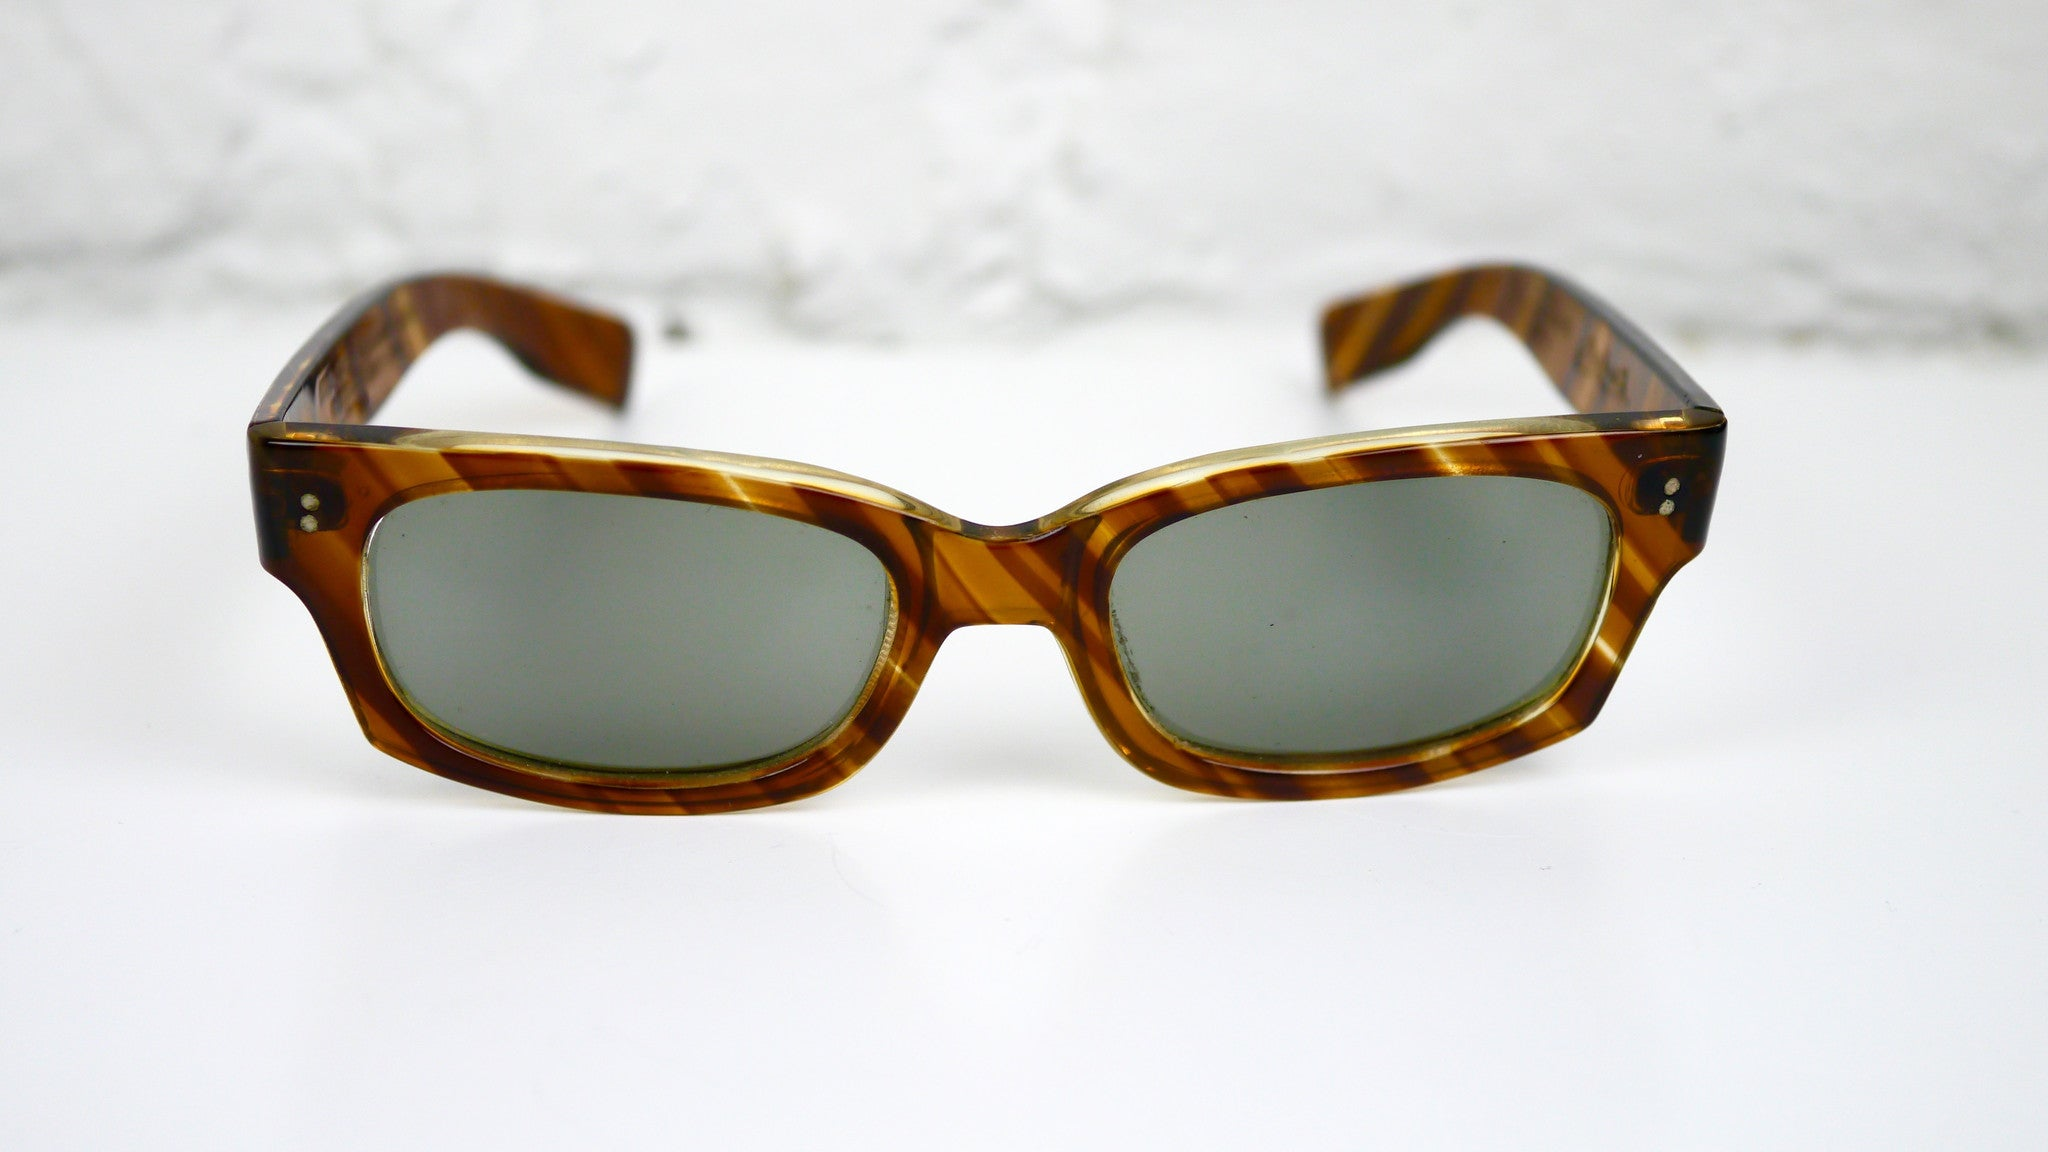 0bb47573065 Vintage Polaroid Cool Ray Sunglasses Styled by Cari Michelle Striped  Tortoise Shell 1950s